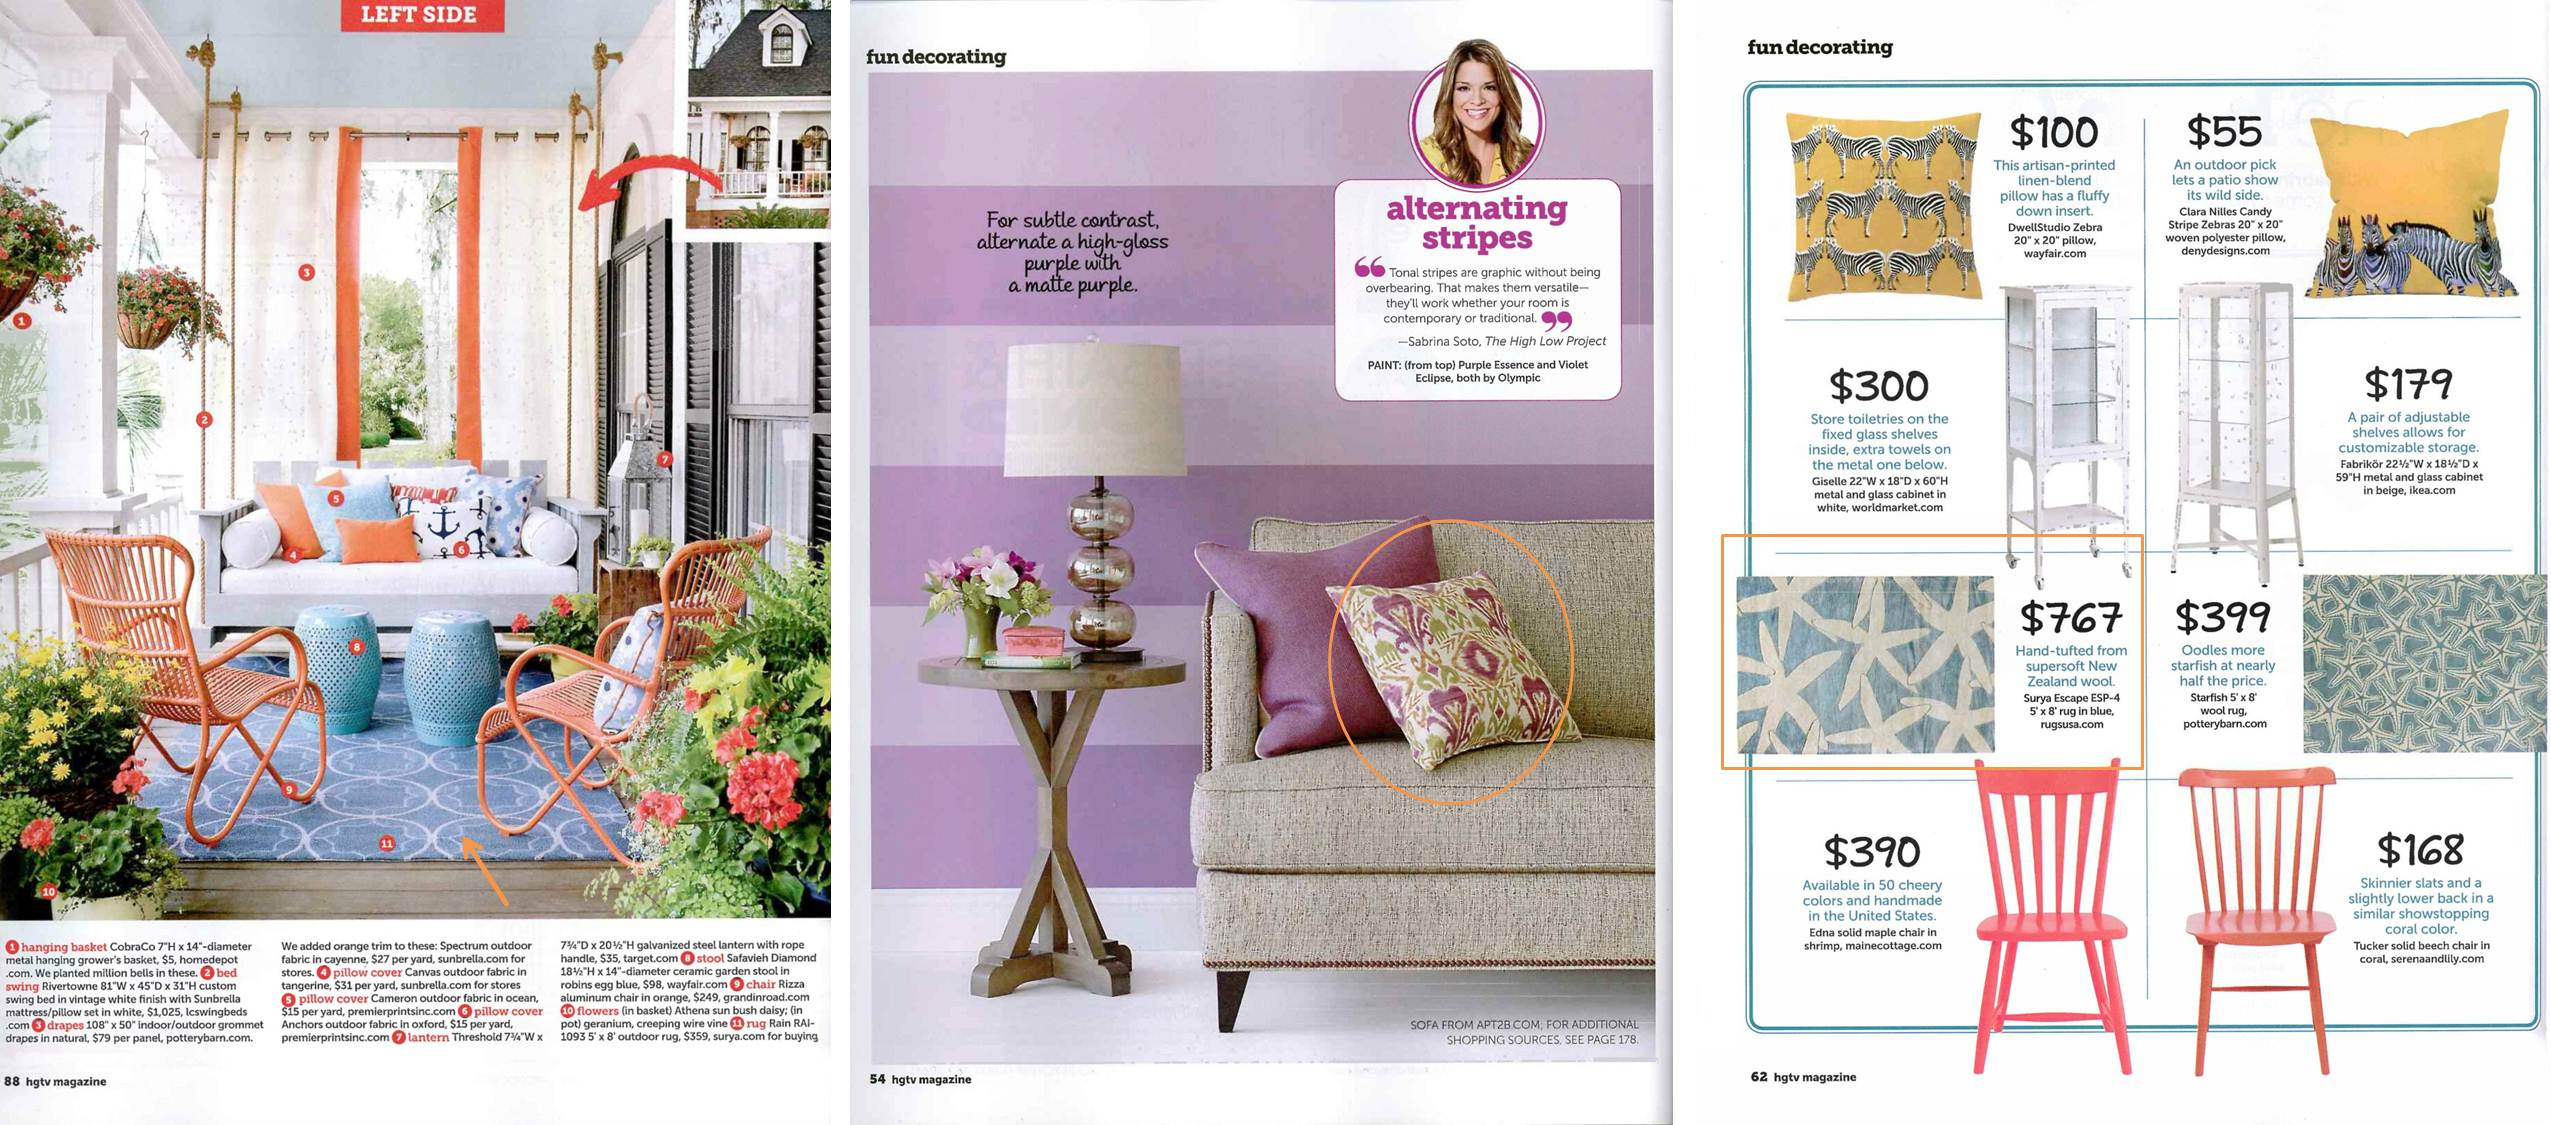 Surya S Indoor Outdoor Rain Rug Is Featured In A Photo Editorial On Summer Sunrooms An Ikat Patterned Pillow From The Storm